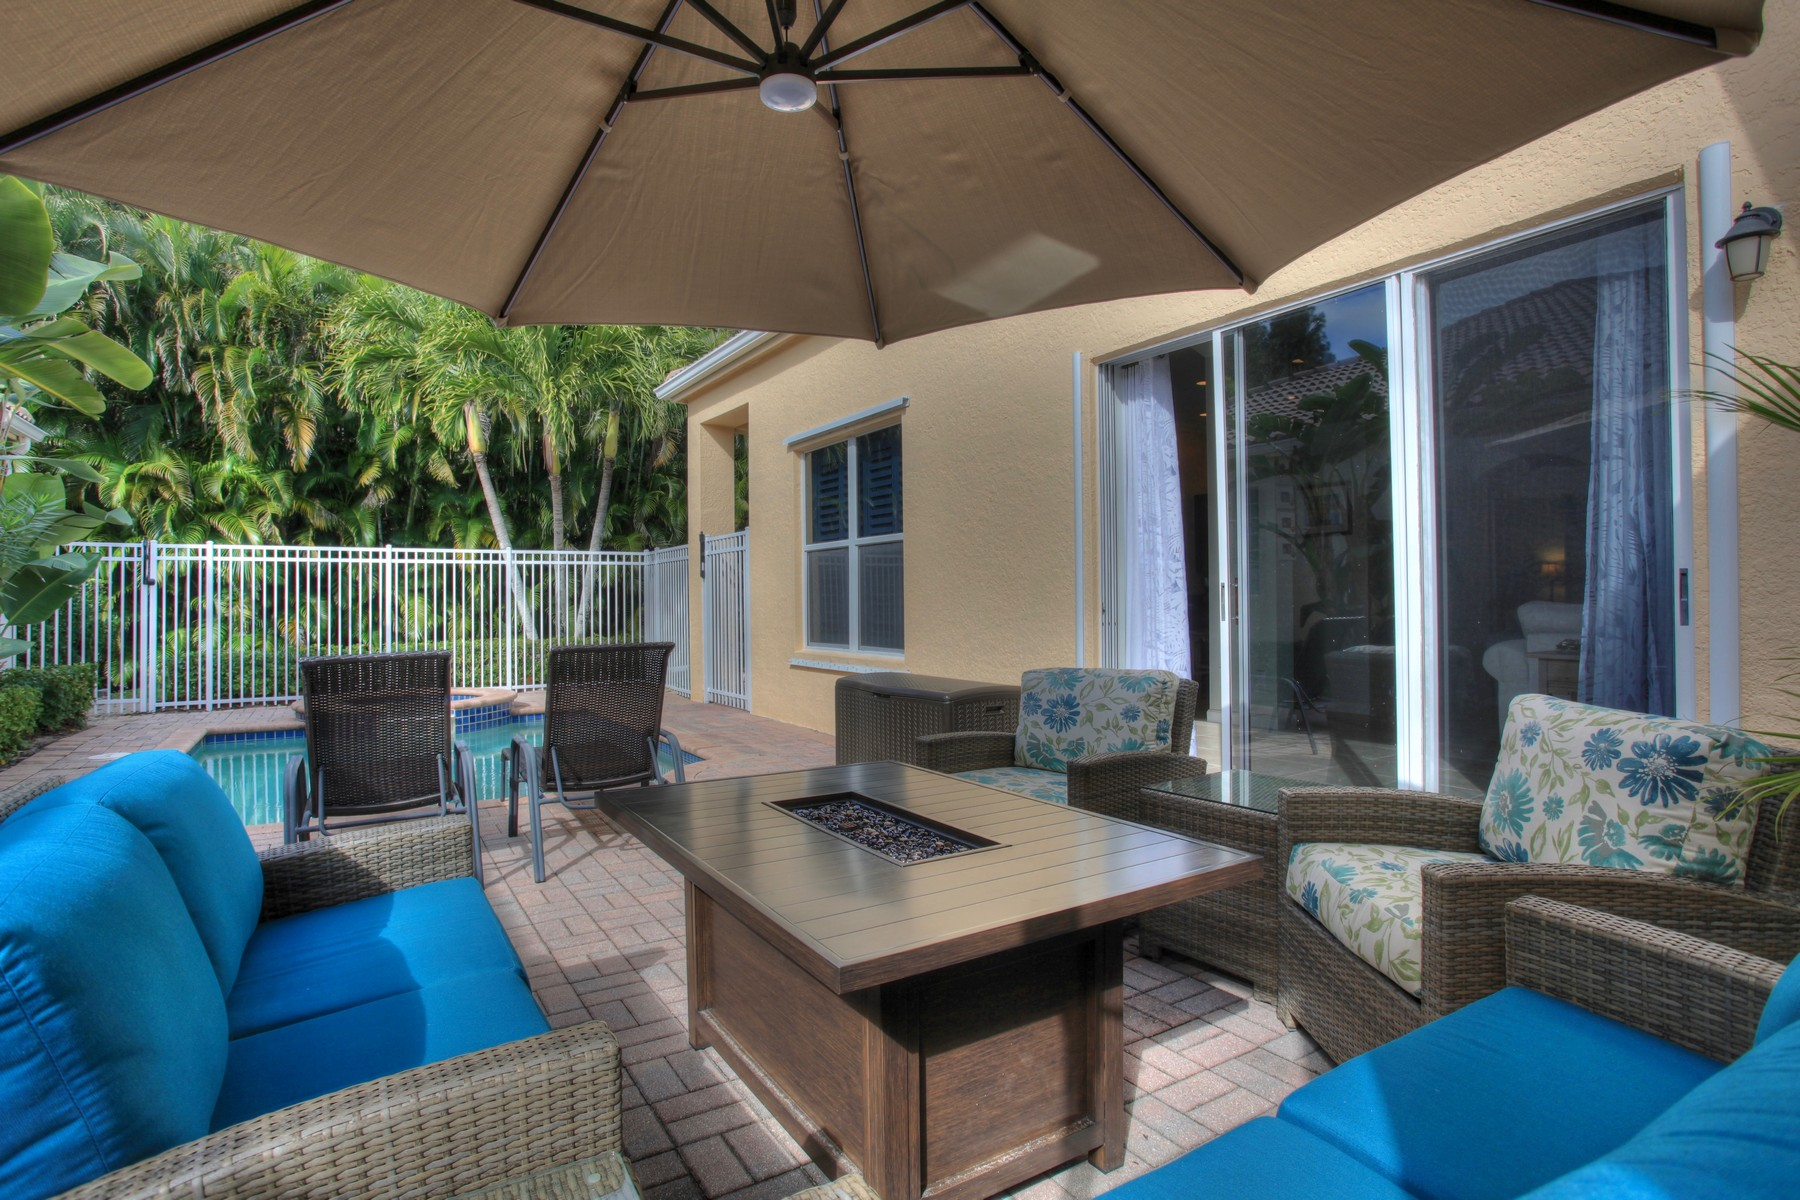 Single Family Home for Sale at Elegant Island Retreat with Heated Pool and Spa 9585 W Maiden Court Vero Beach, Florida 32963 United States